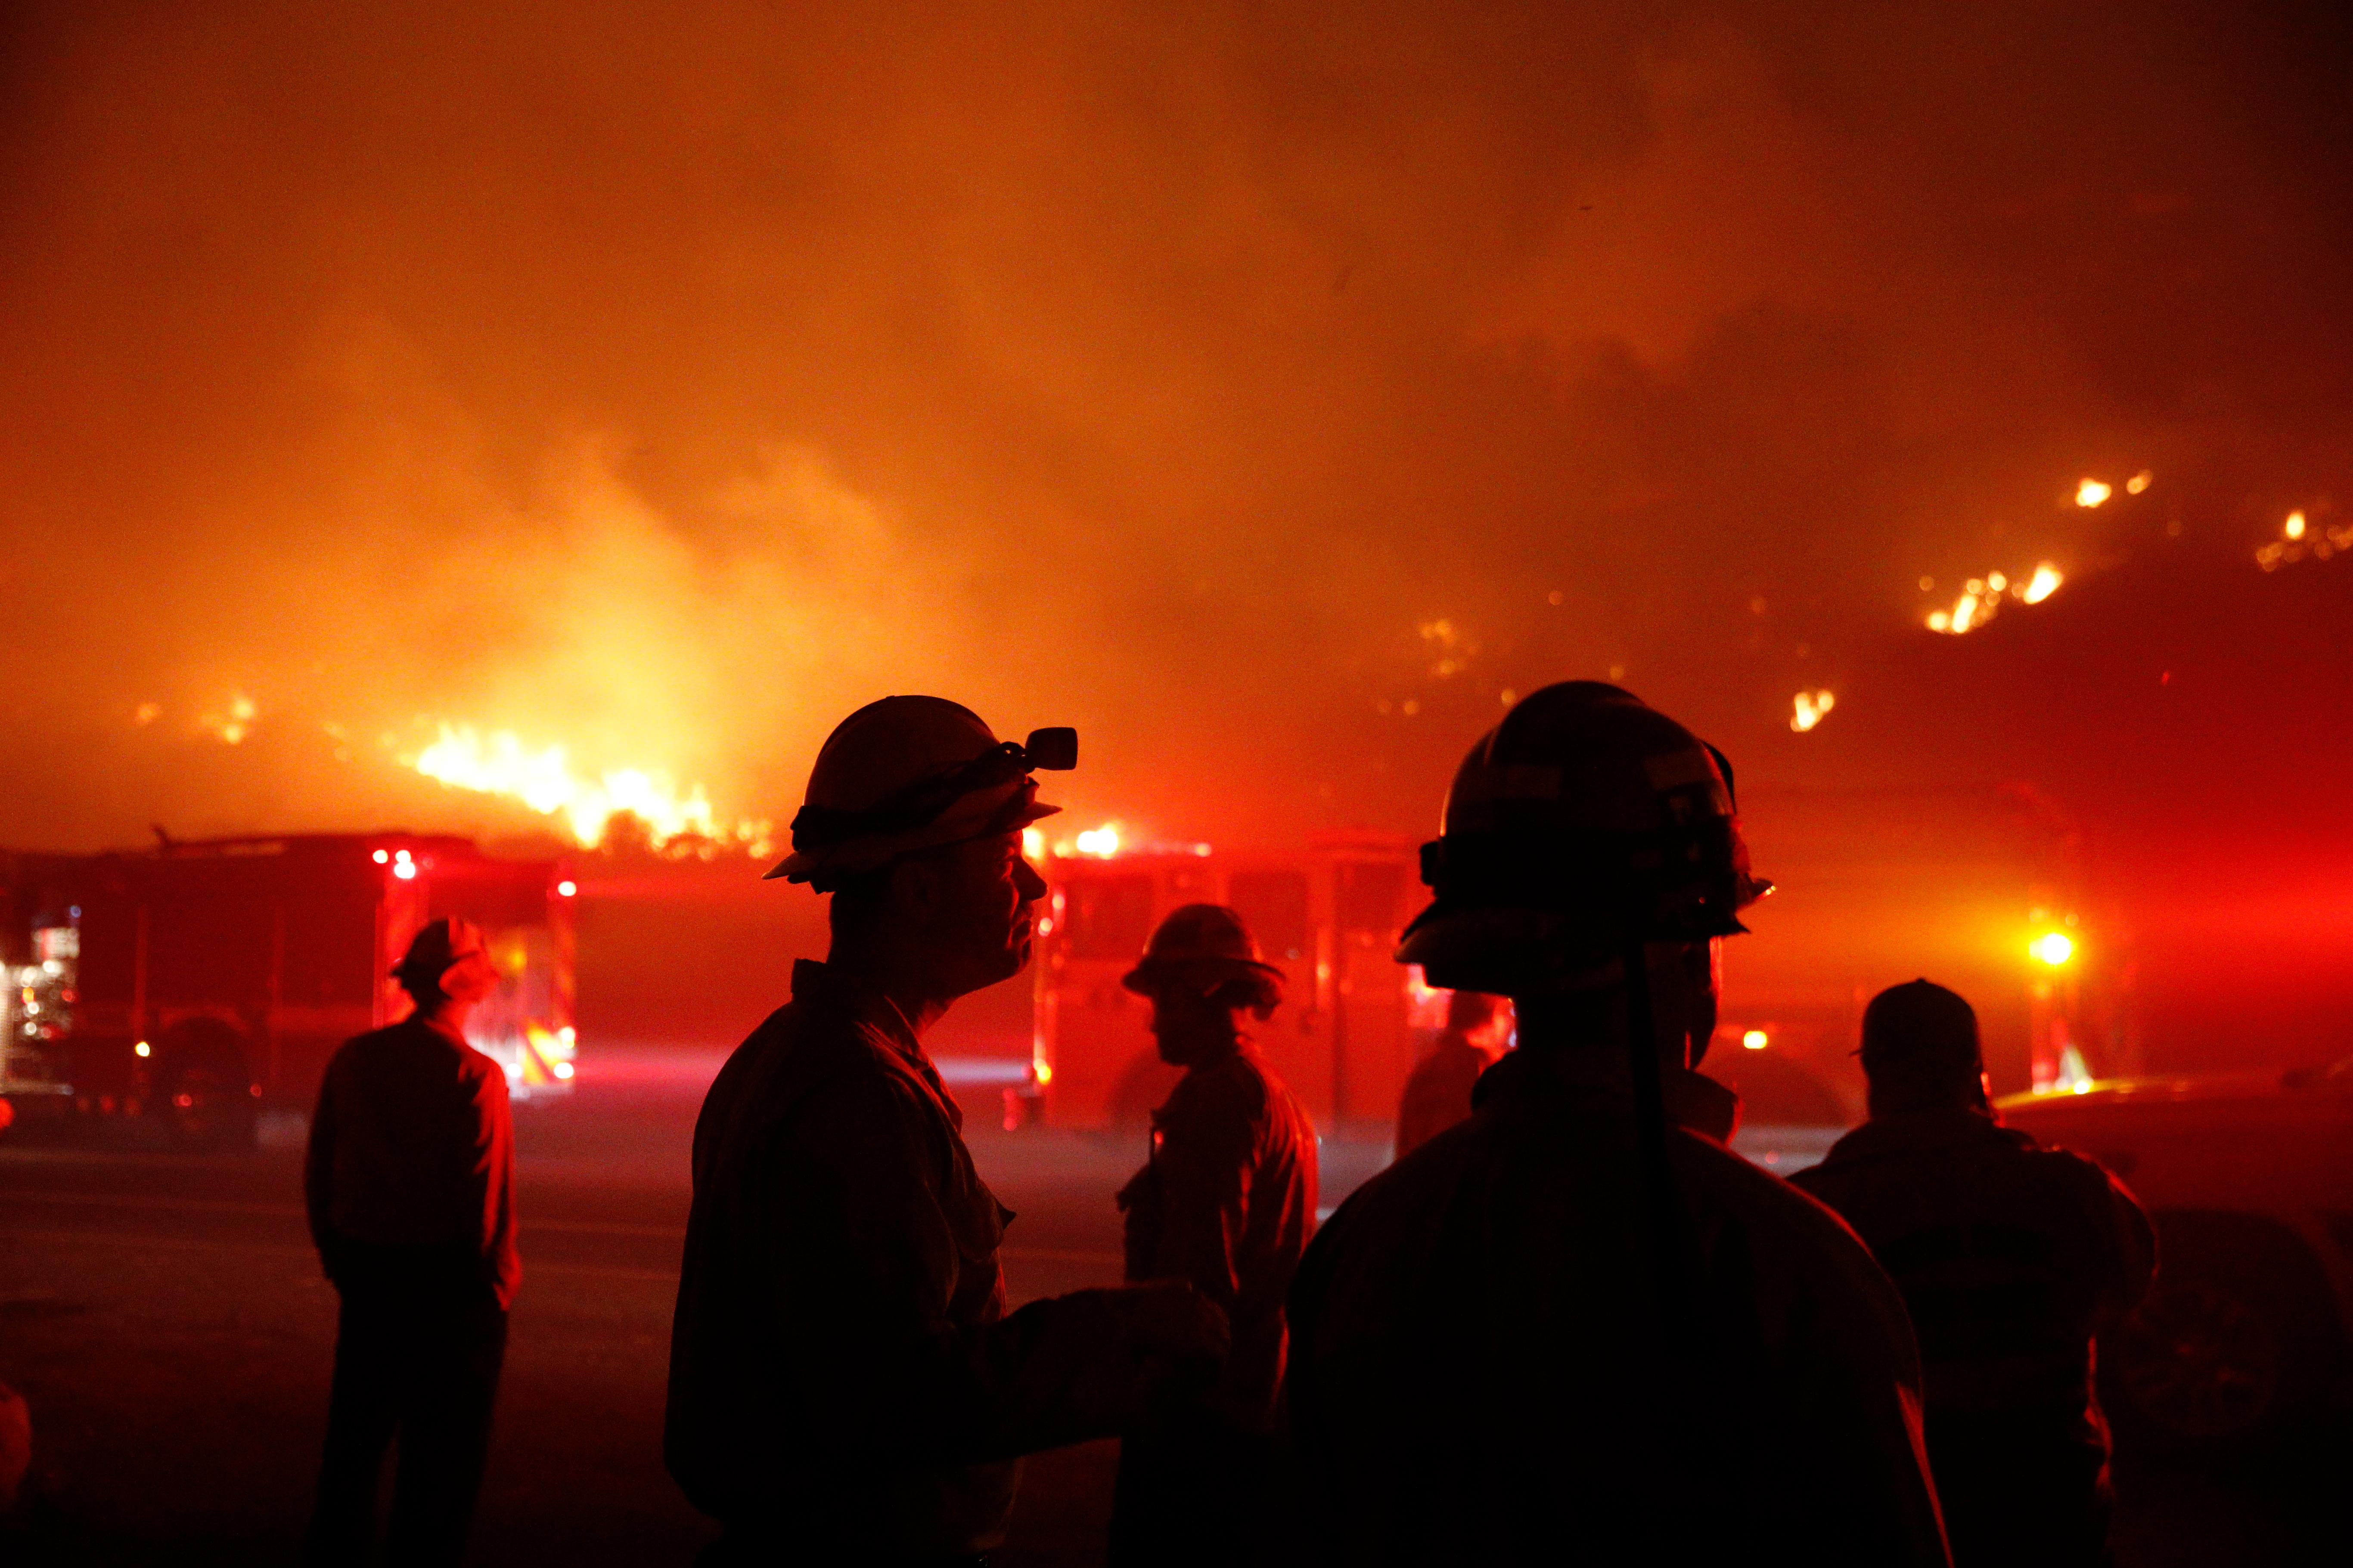 Firefighters gather in front of a residential area as a wildfire burns along the 101 Freeway Tuesday, Dec. 5, 2017, in Ventura, Calif. Raked by ferocious Santa Ana winds, explosive wildfires northwest of Los Angeles and in the city's foothills burned a psychiatric hospital and scores of homes and other structures Tuesday and forced the evacuation of tens of thousands of people. (AP Photo/Jae C. Hong)